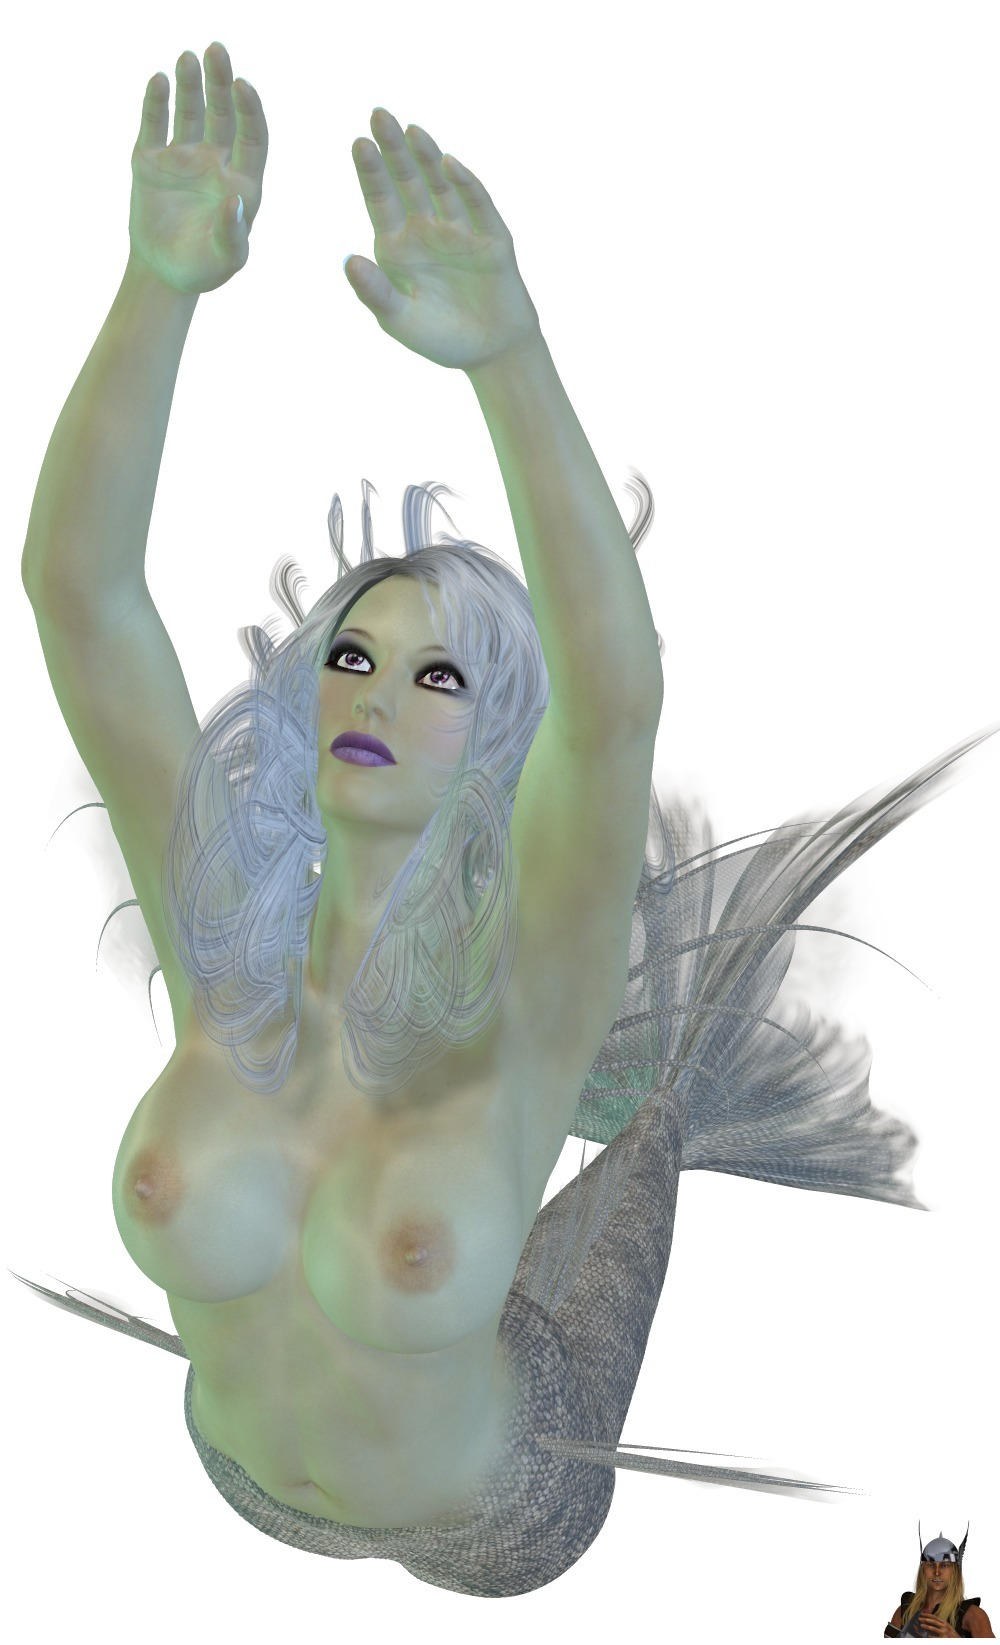 Mermaid 02 01 (01-02/02 - 3d, 3d_art - thor3d | ello